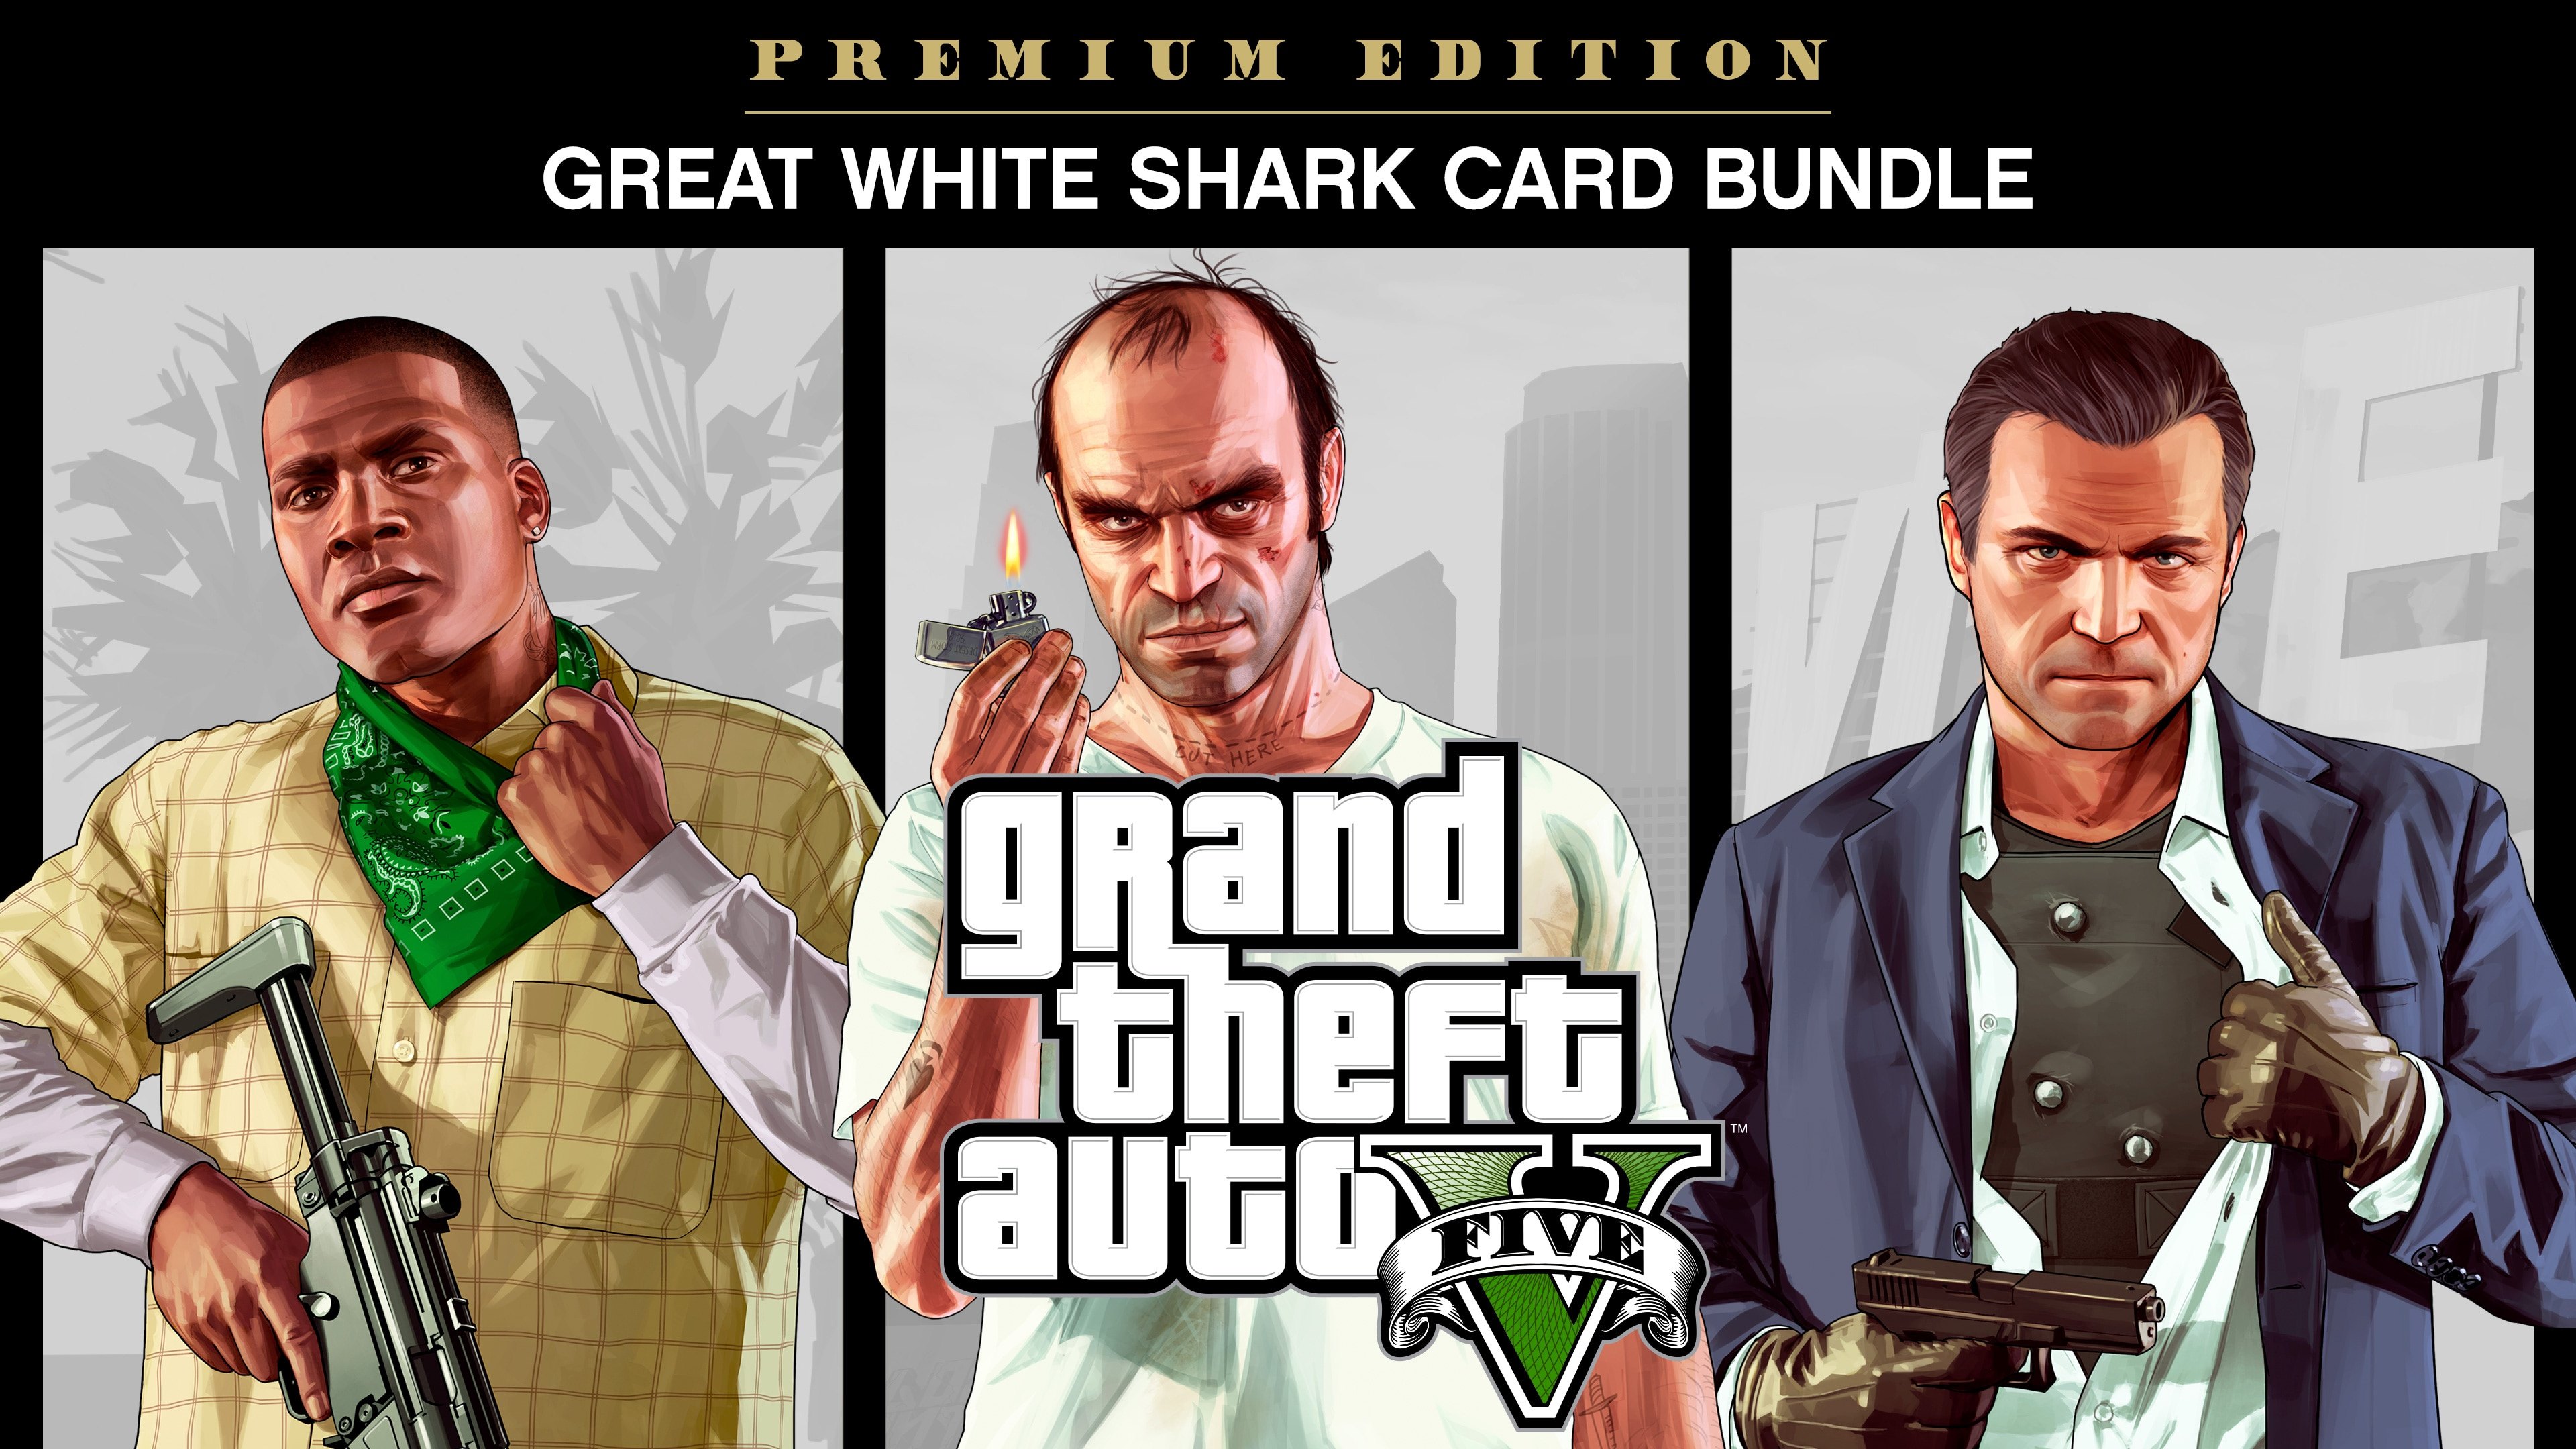 Grand Theft Auto V: Premium Edition & Great White Shark Card Bundle